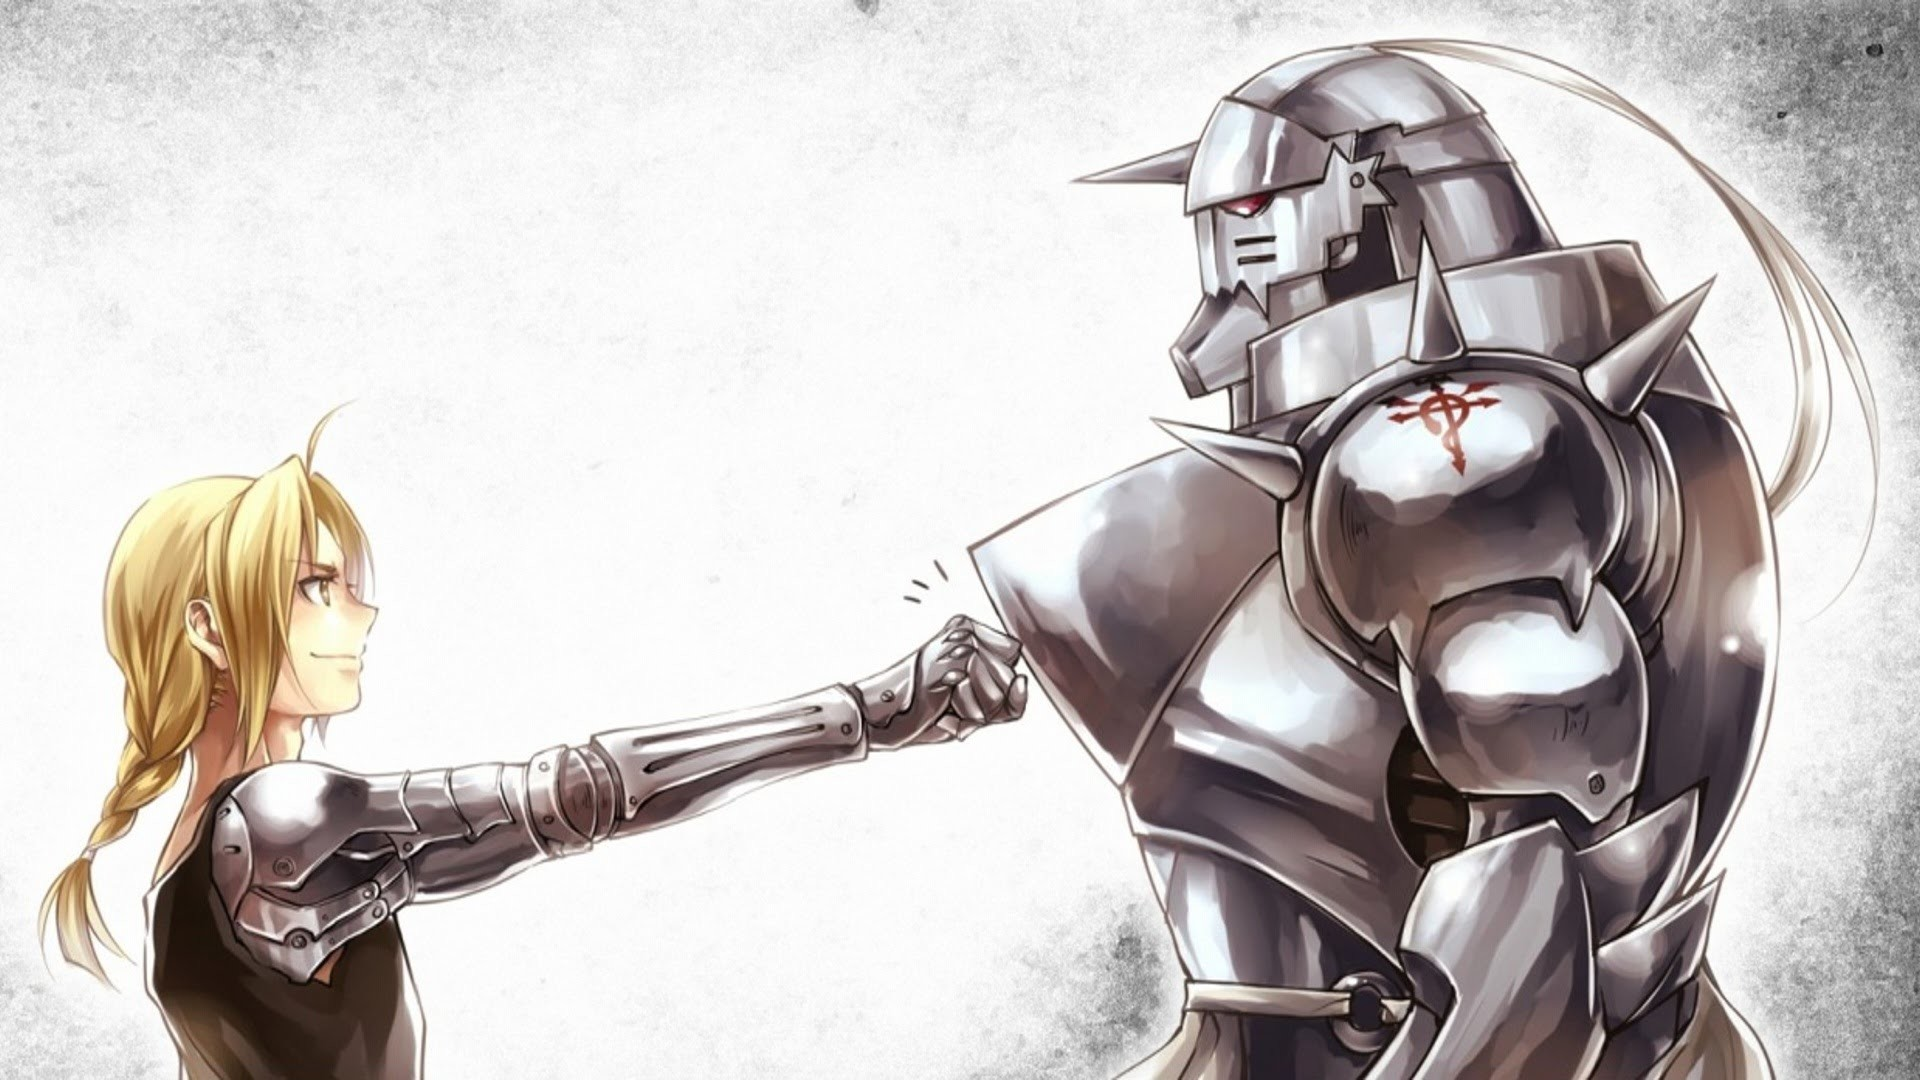 Military Anime Wallpapers Hd Quotes Backgrounds With Art: Fullmetal Alchemist Wallpaper (67+ Images